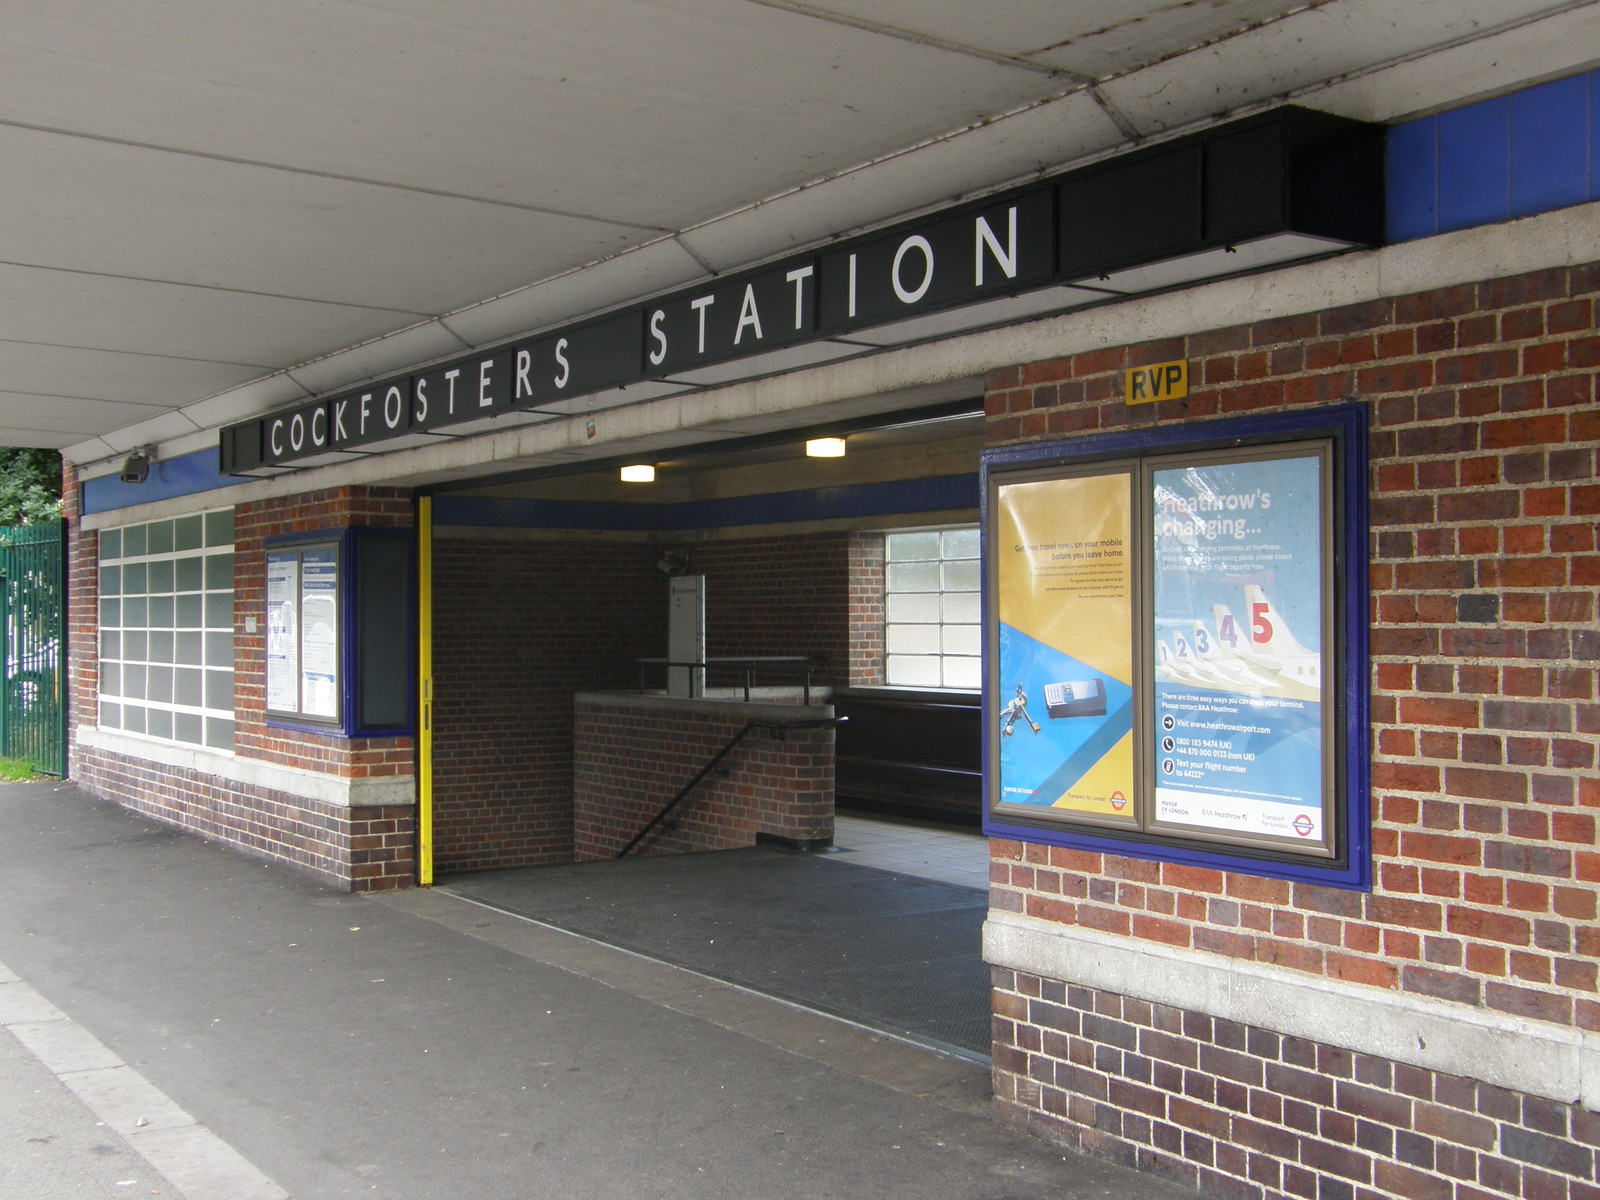 Cockfosters station